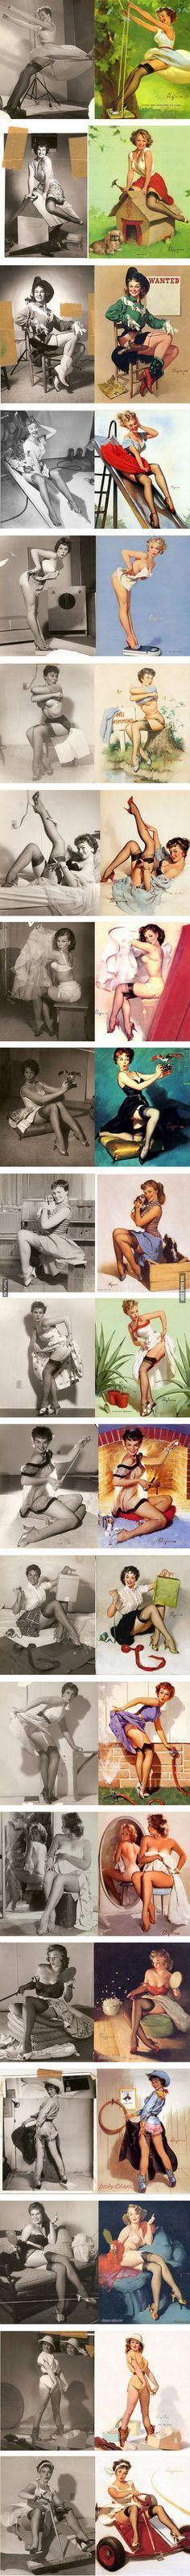 Before Photoshop, there was pinup art.